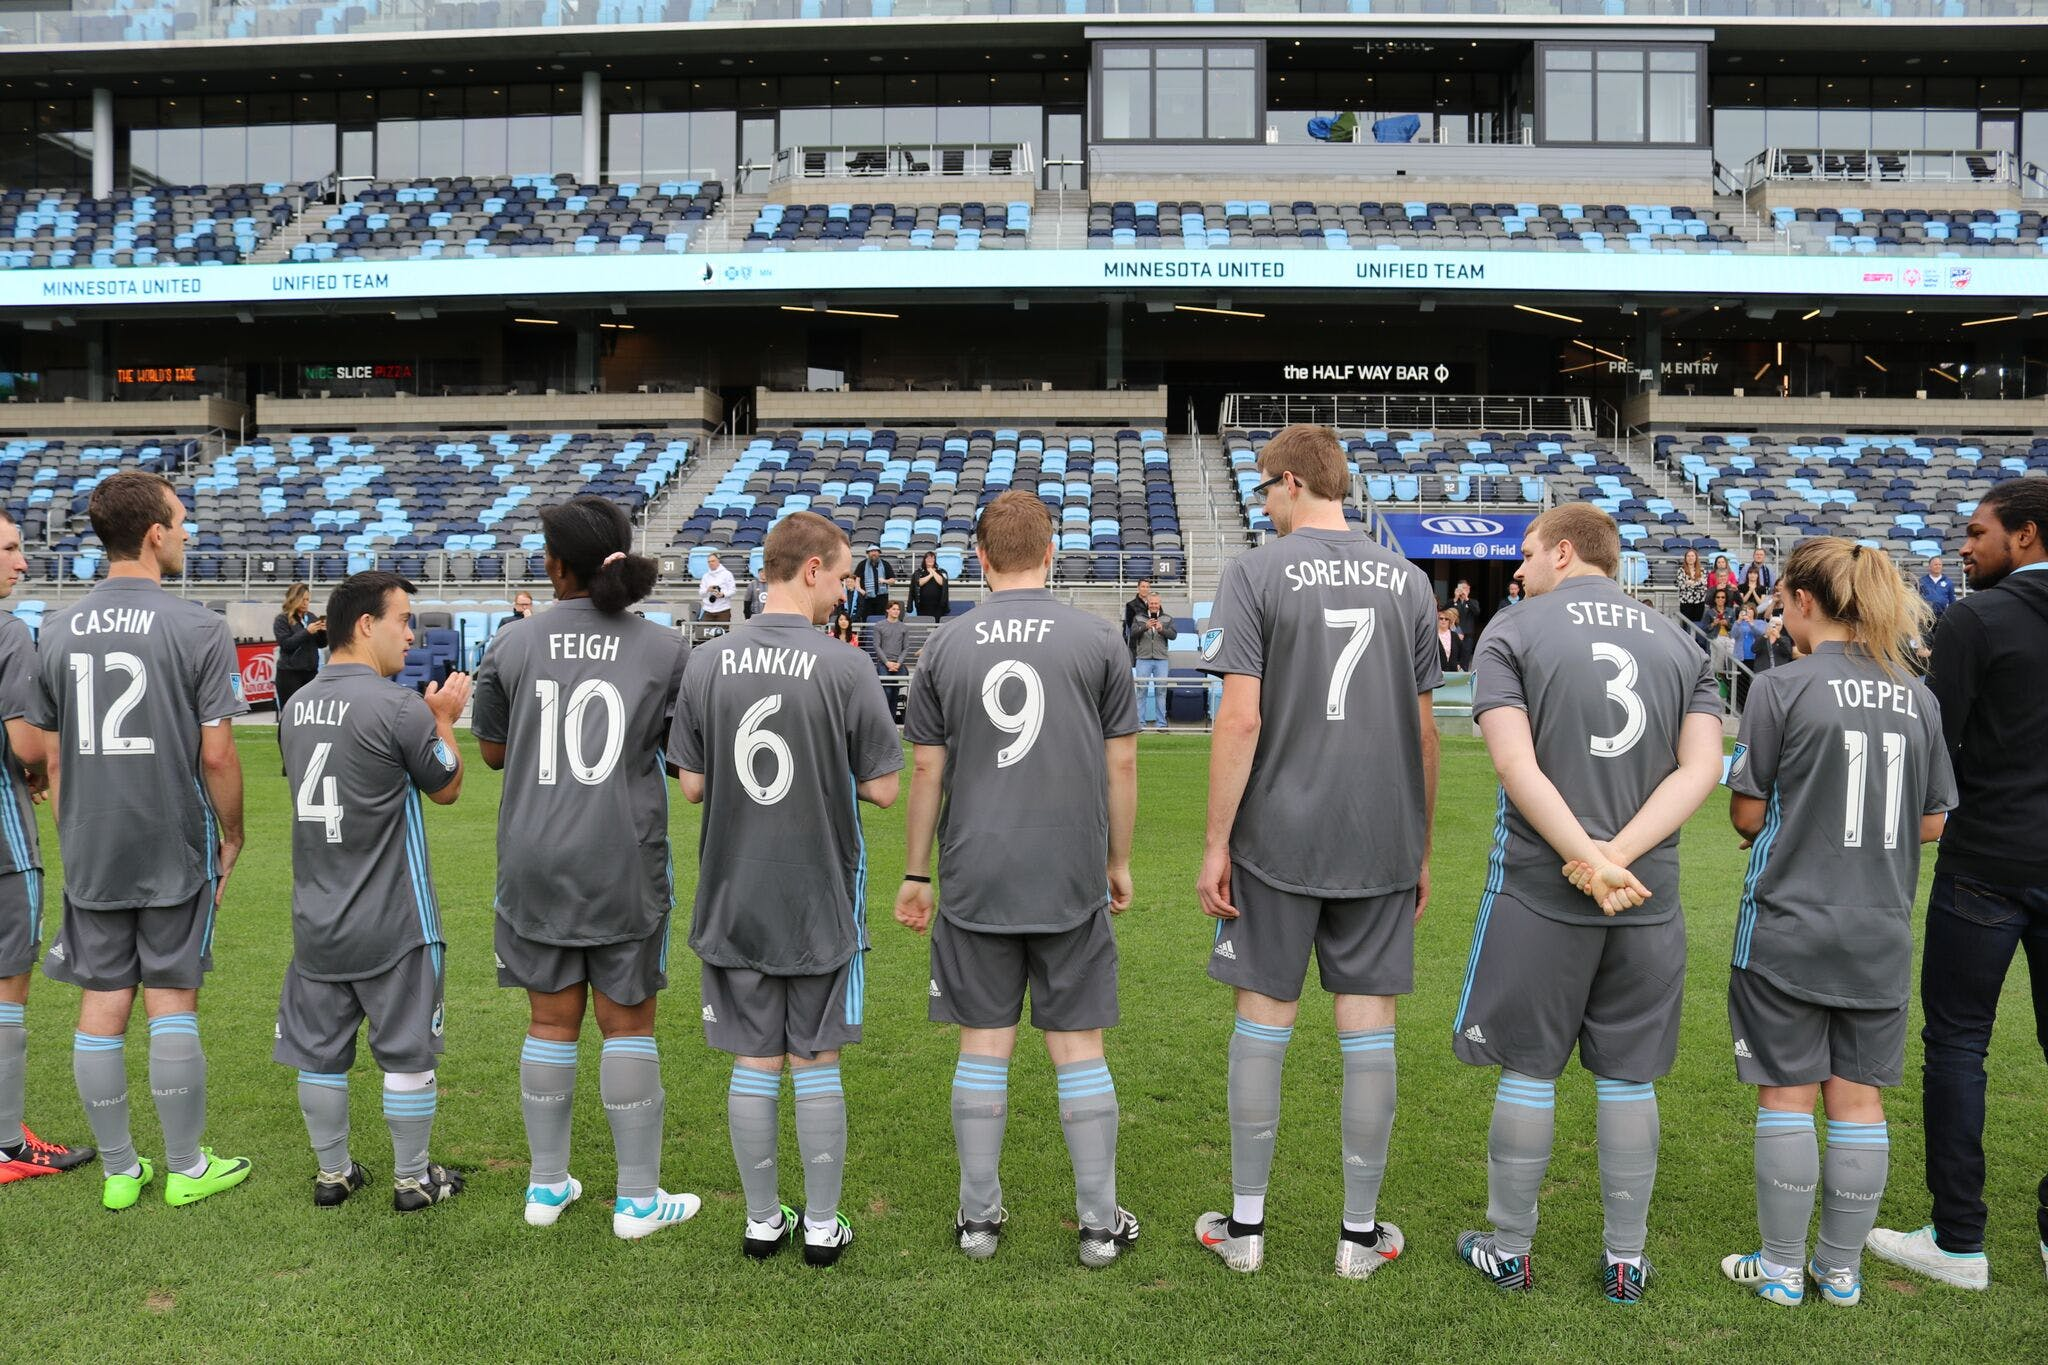 Sarff on the field with the other new members of the 2019 Minnesota United Unified Soccer Team